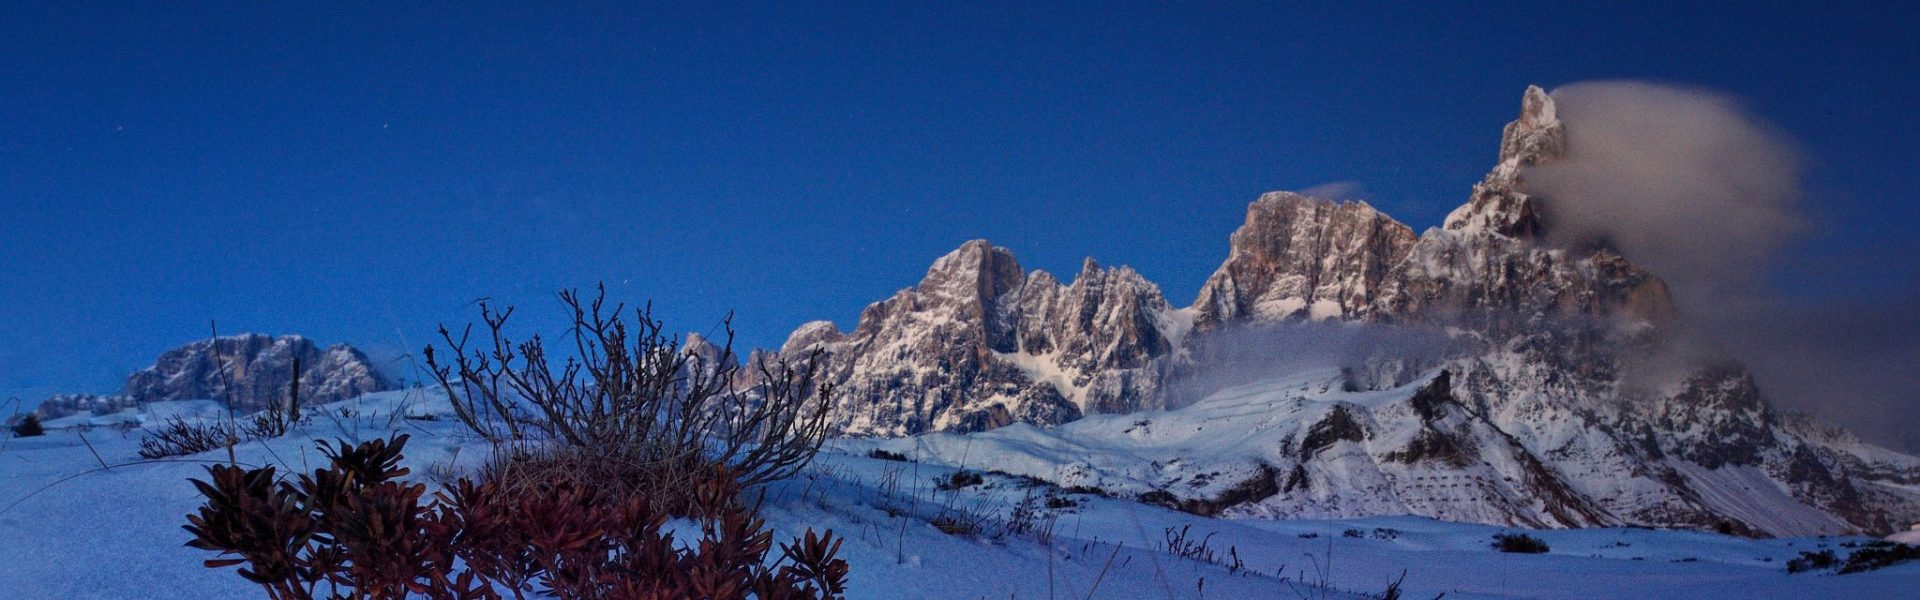 PALE DI SAN MARTINO: Cime inviolate e valli sconosciute | Best of Dolomites